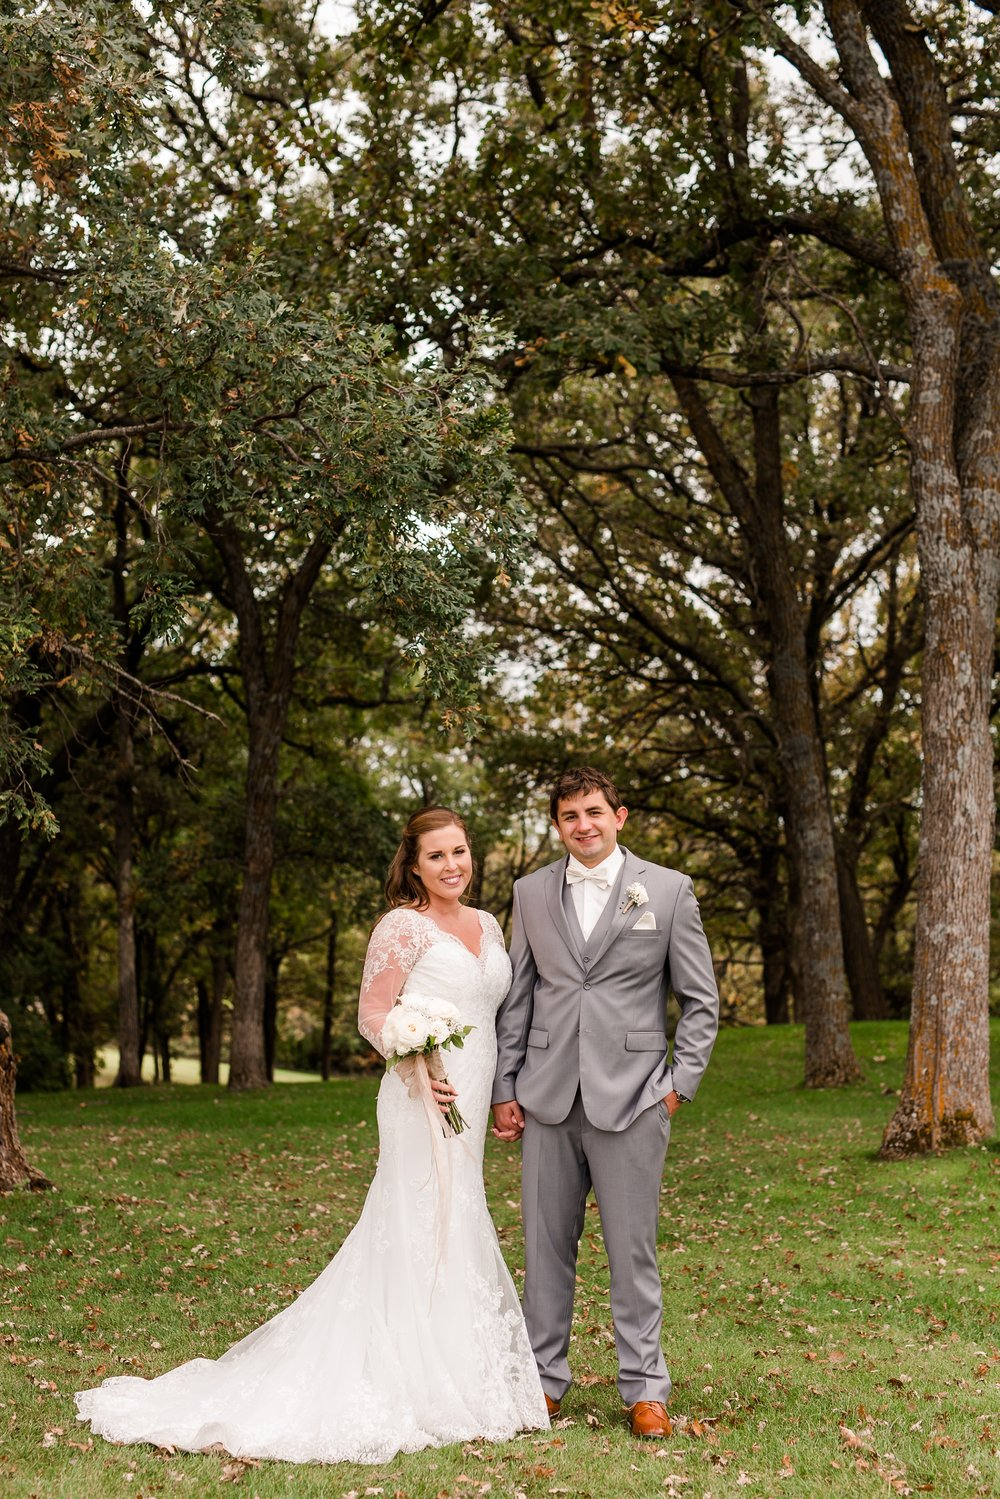 AmberLangerudPhotography_Fair Hills Resort Lakeside Wedding in Minnesota_3446.jpg